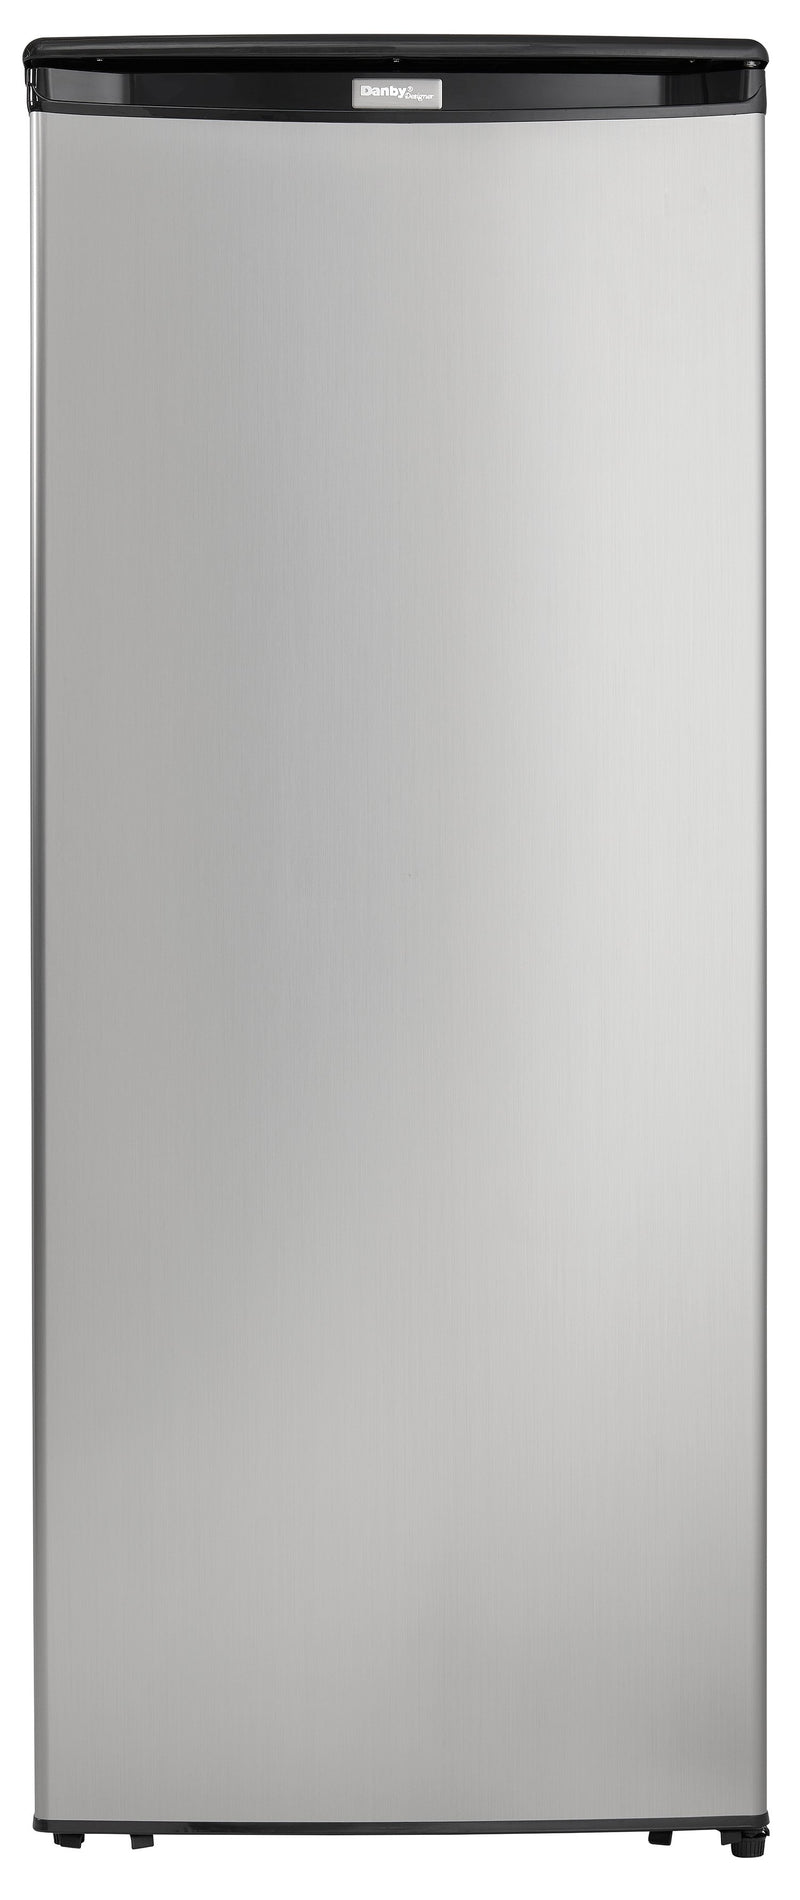 Danby Stainless Steel Look Upright Freezer (8.5 Cu. Ft) - DUFM085A4BSLDD